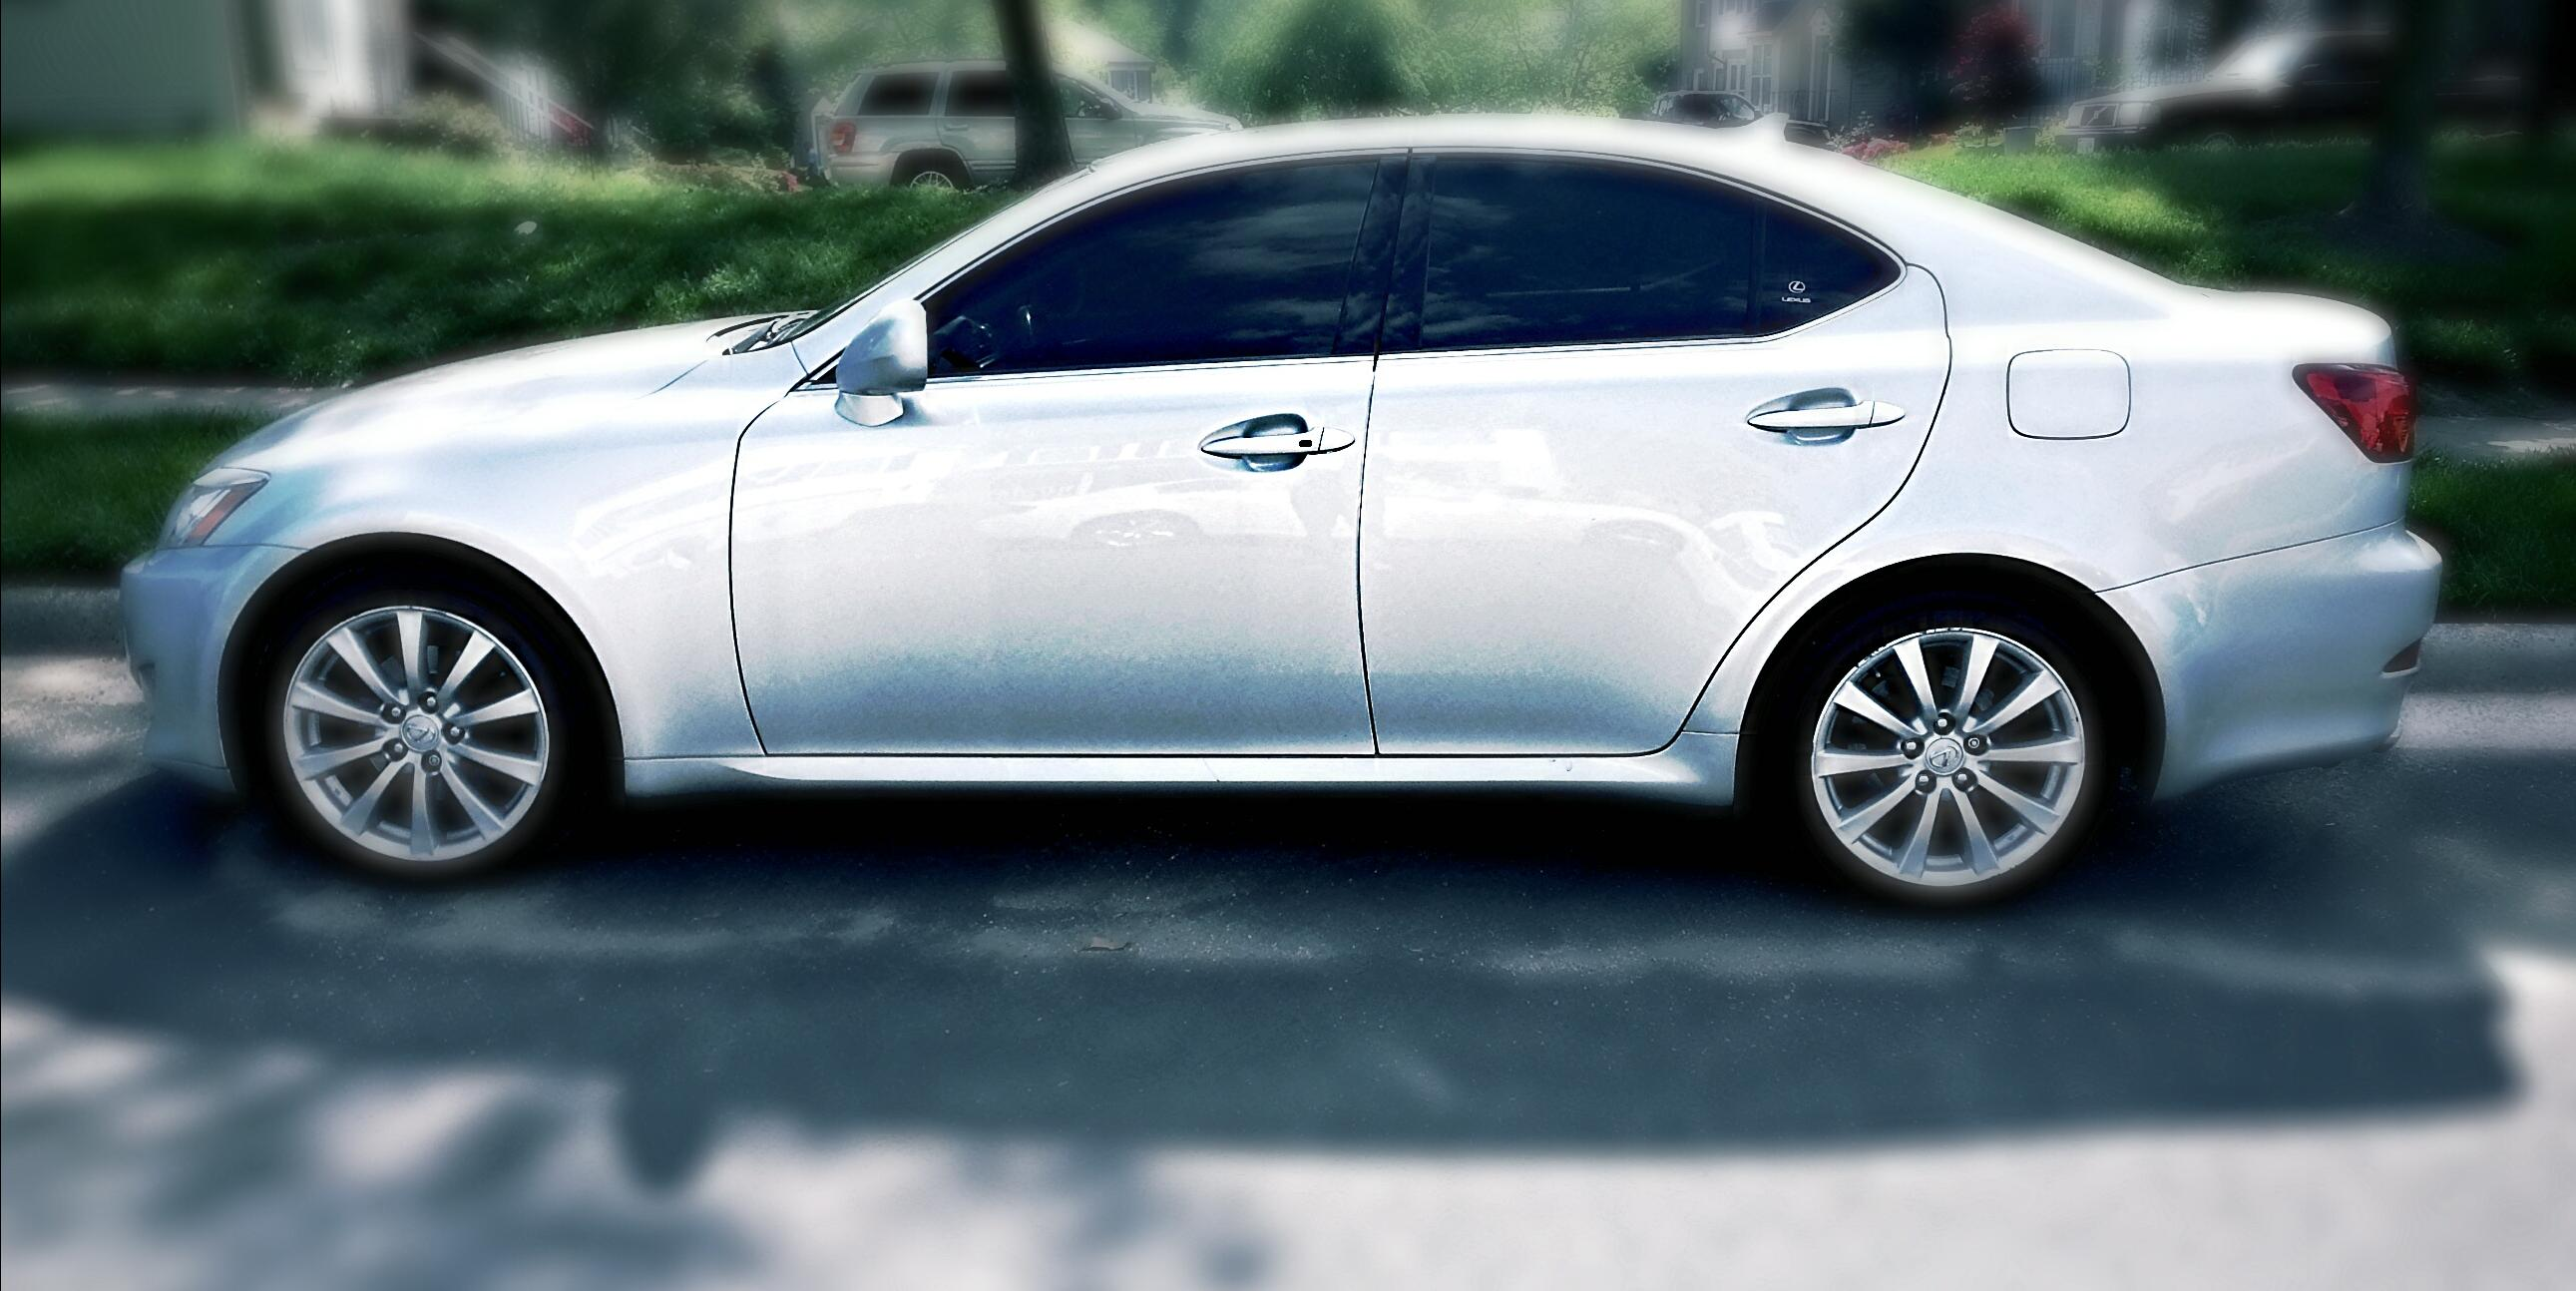 CHOOCHperez's 2008 Lexus IS